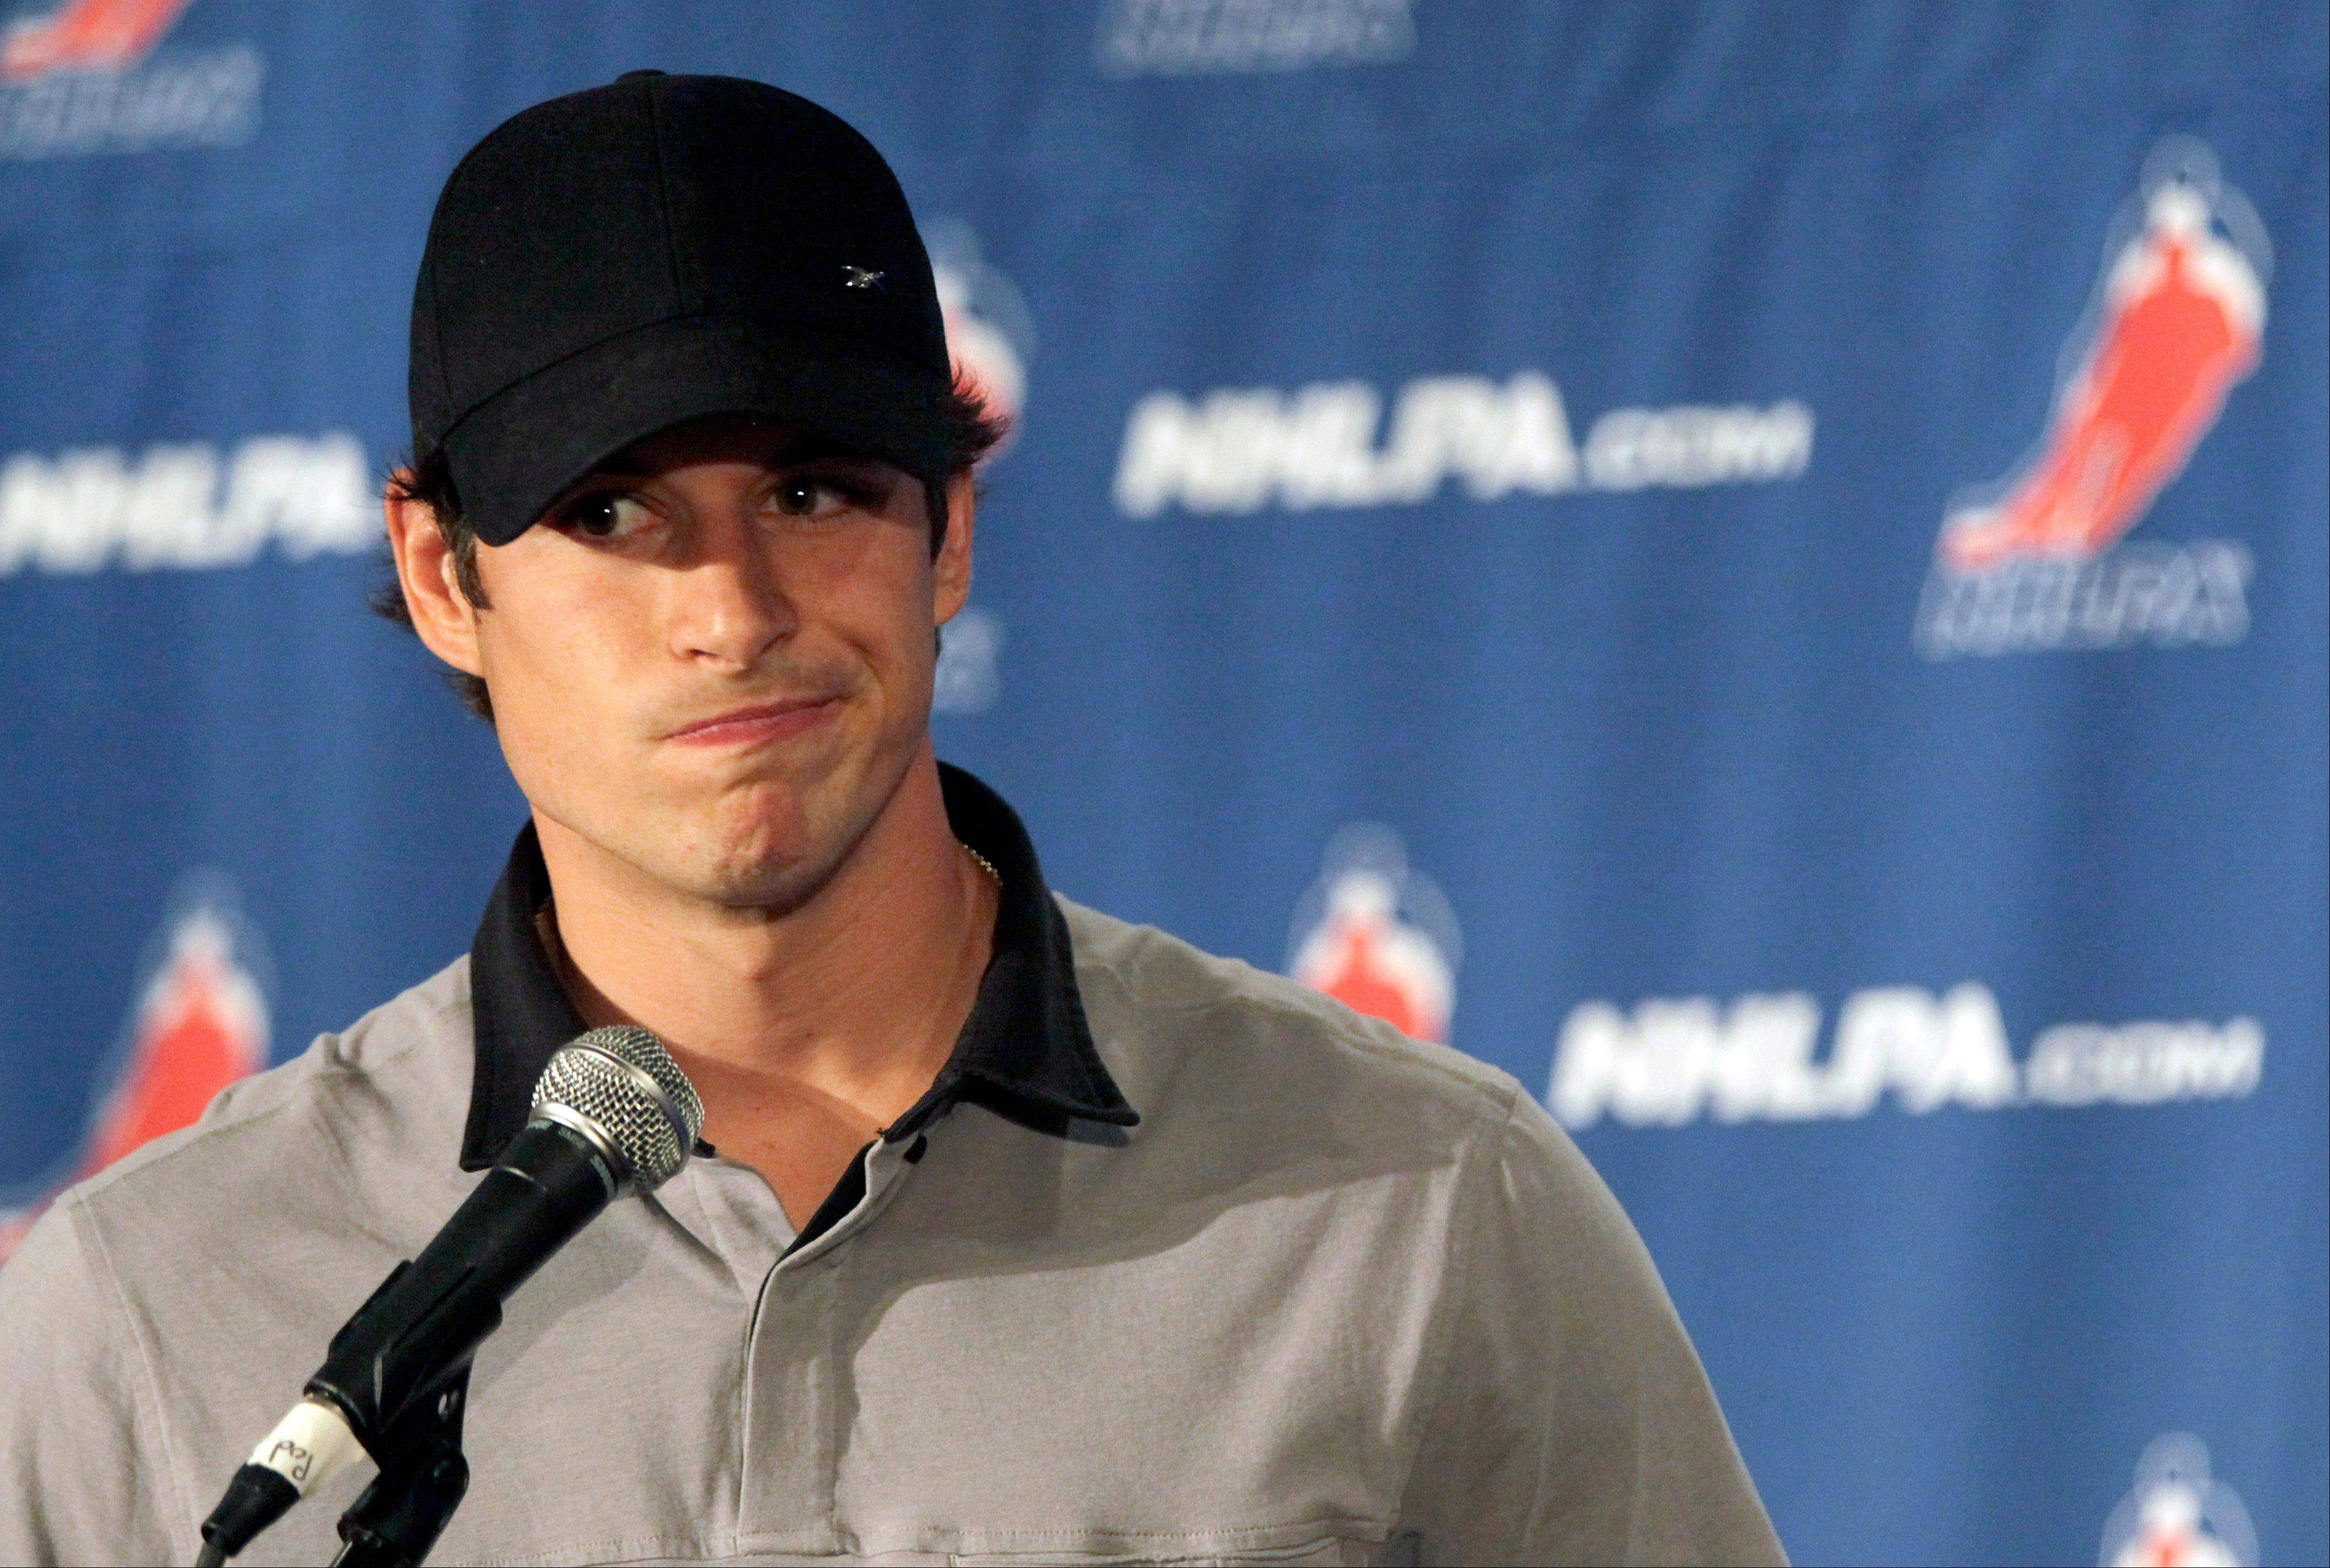 Sidney Crosby speaks to reporters Thursday during a news conference in New York. With a lockout looking increasingly certain, the NHL players union meets Thursday followed by an owners' meeting at league headquarters with Commissioner Gary Bettman.